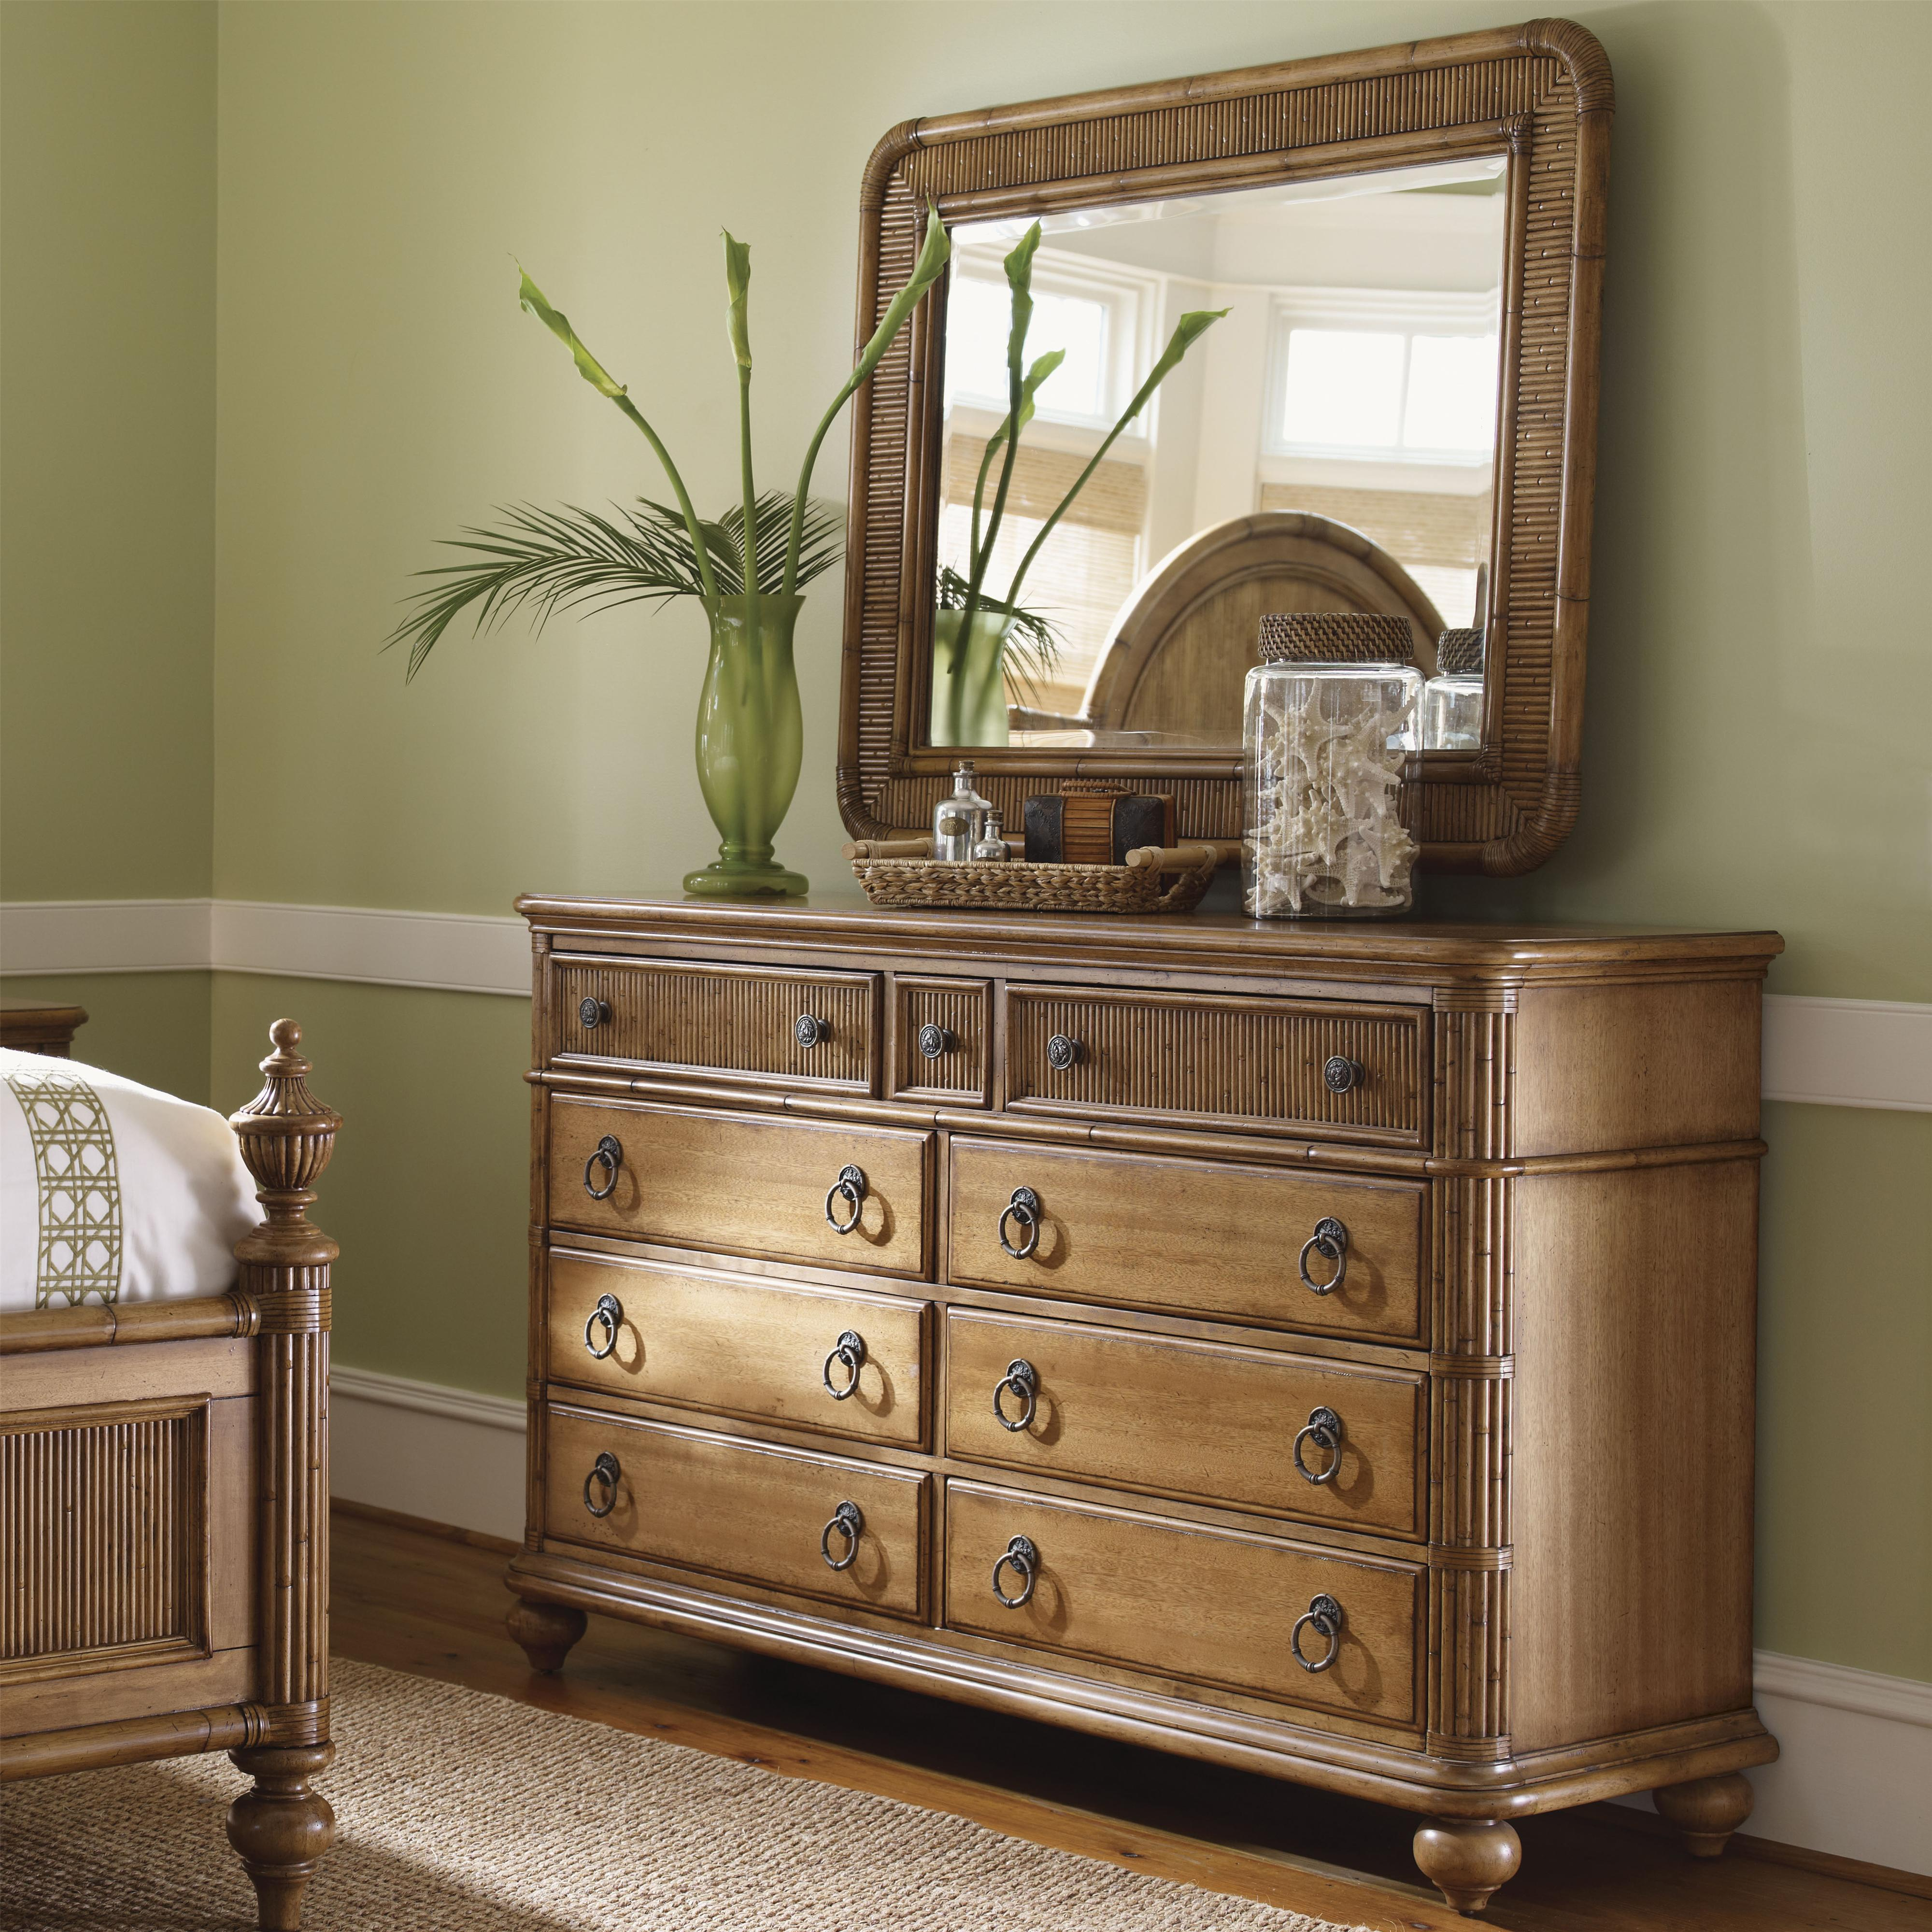 Tommy Bahama Home Beach House Biscayne Dresser & Osprey Mirror - Item Number: 540-233+205